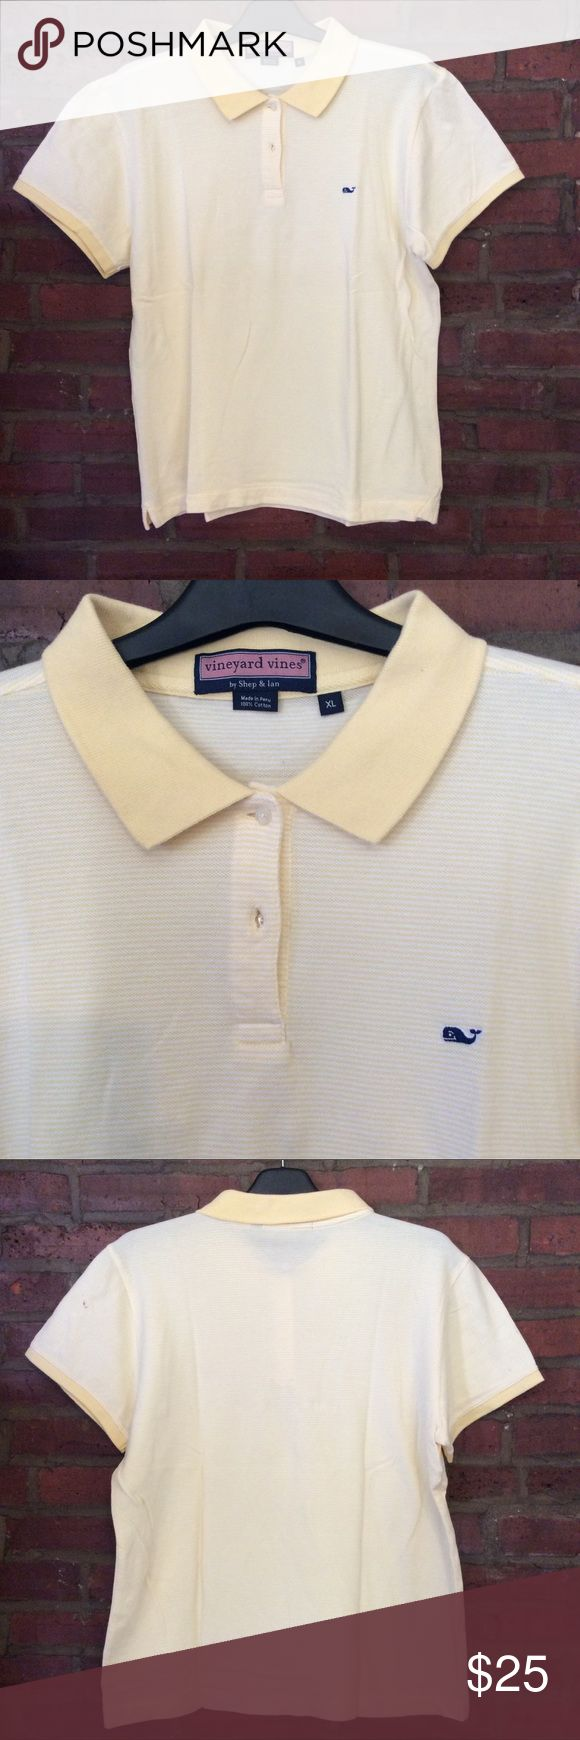 Men's Vineyard Vines Striped Polo Shirt Nice Vineyard Vines striped polo shirt. Vineyard Vines Shirts Polos